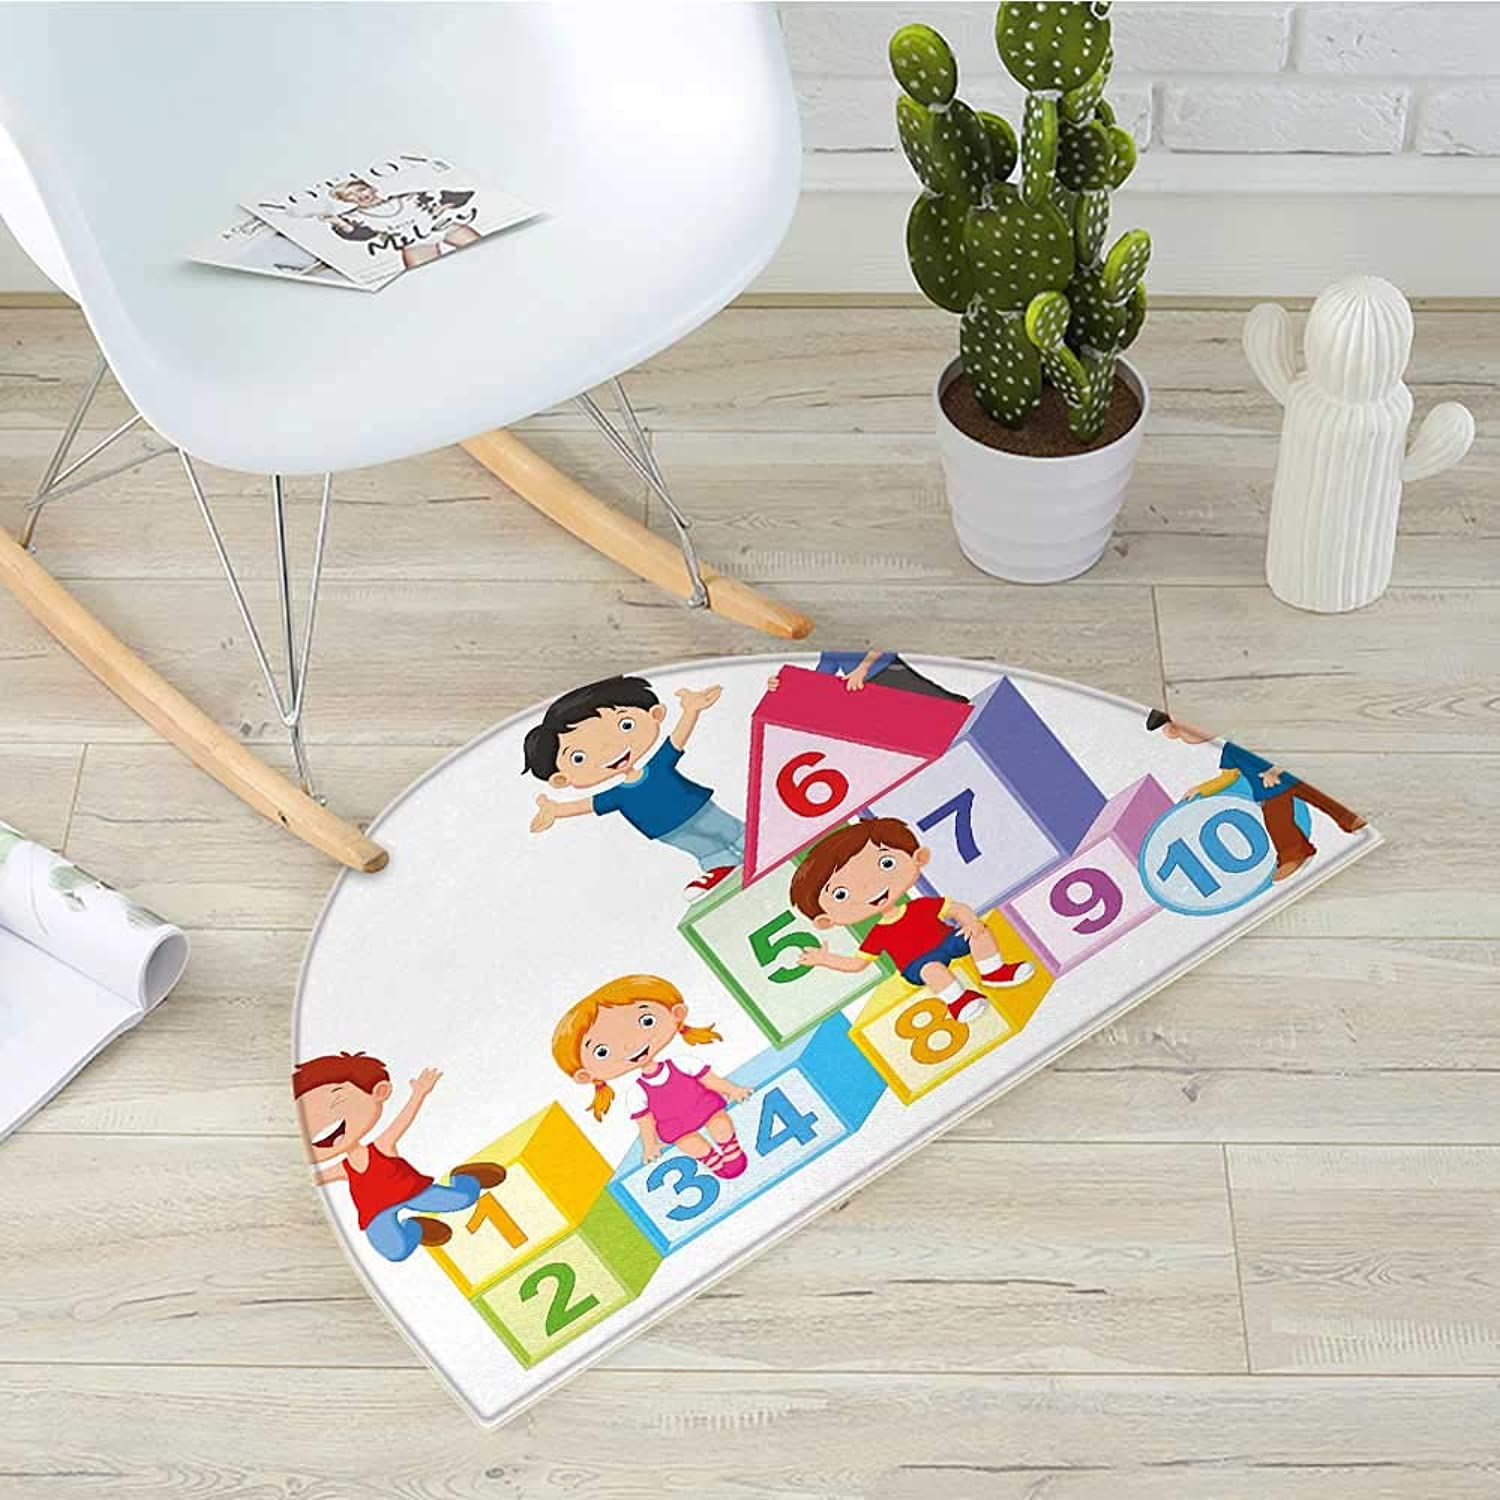 Educational Semicircle Doormat Happy Kids Boys and Girls with Number Blocks Triangle Rectangle and Square Halfmoon doormats H 35.4  xD 53.1  Multicolor